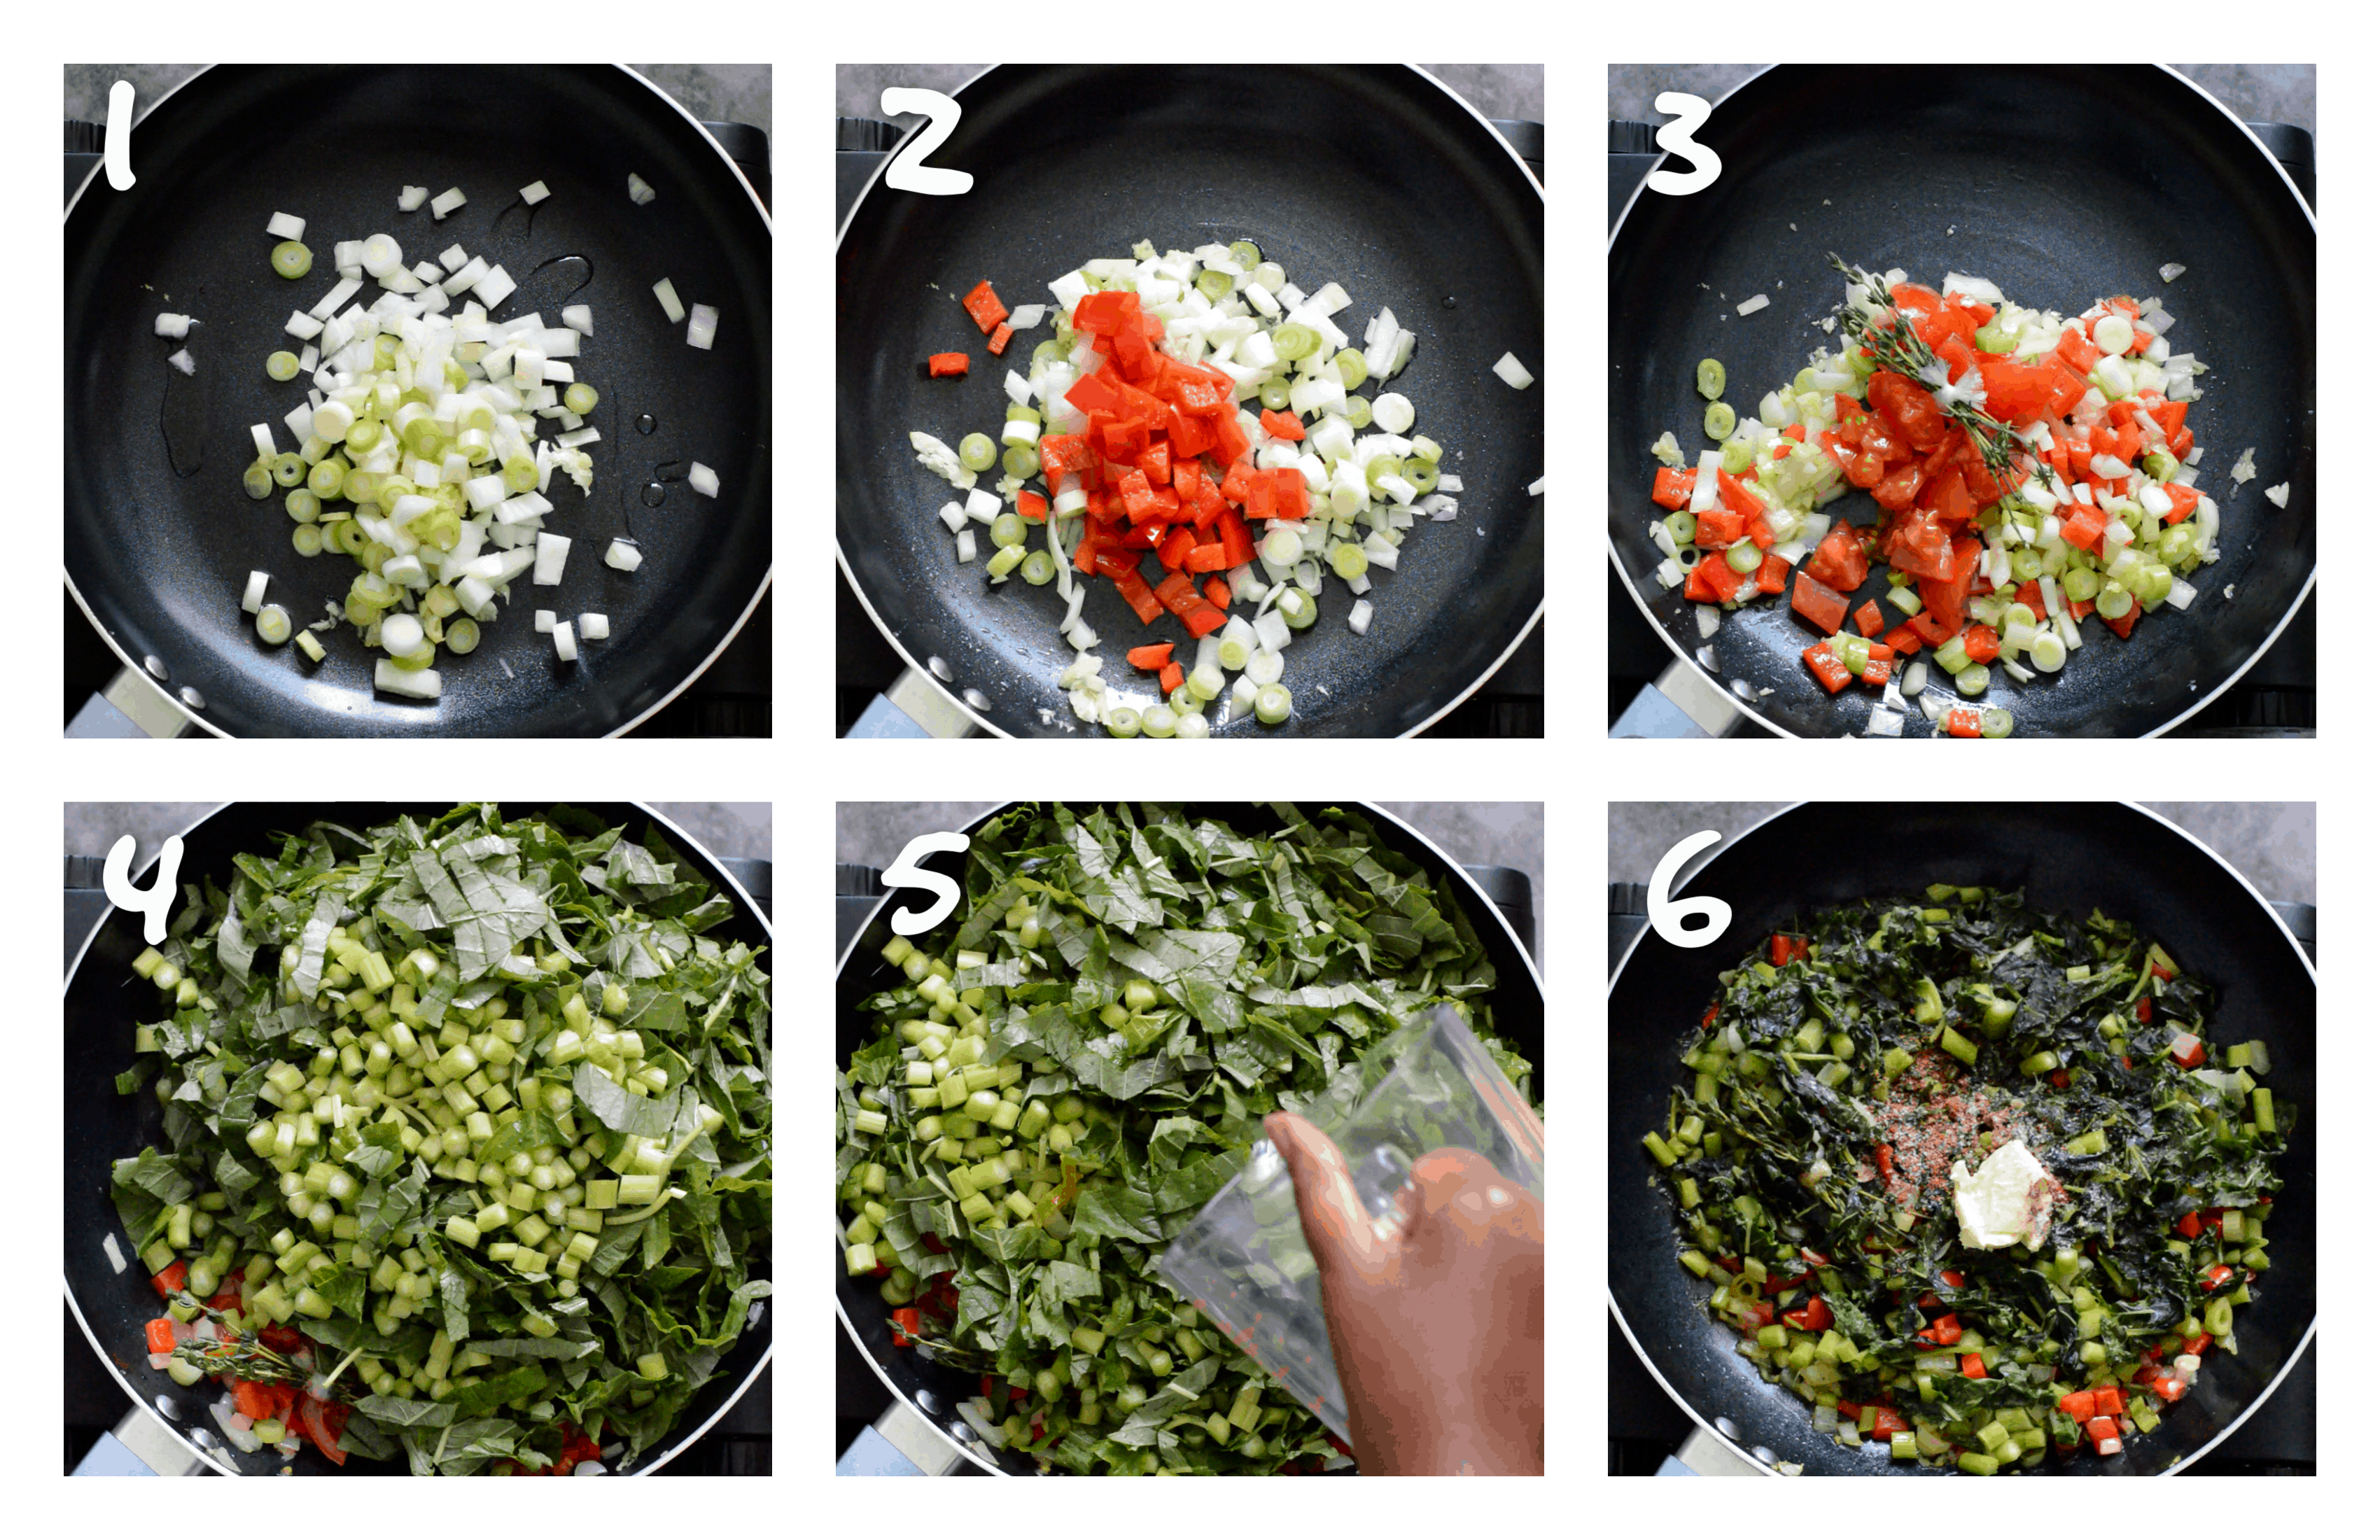 steps1-6 cooking the callaloo